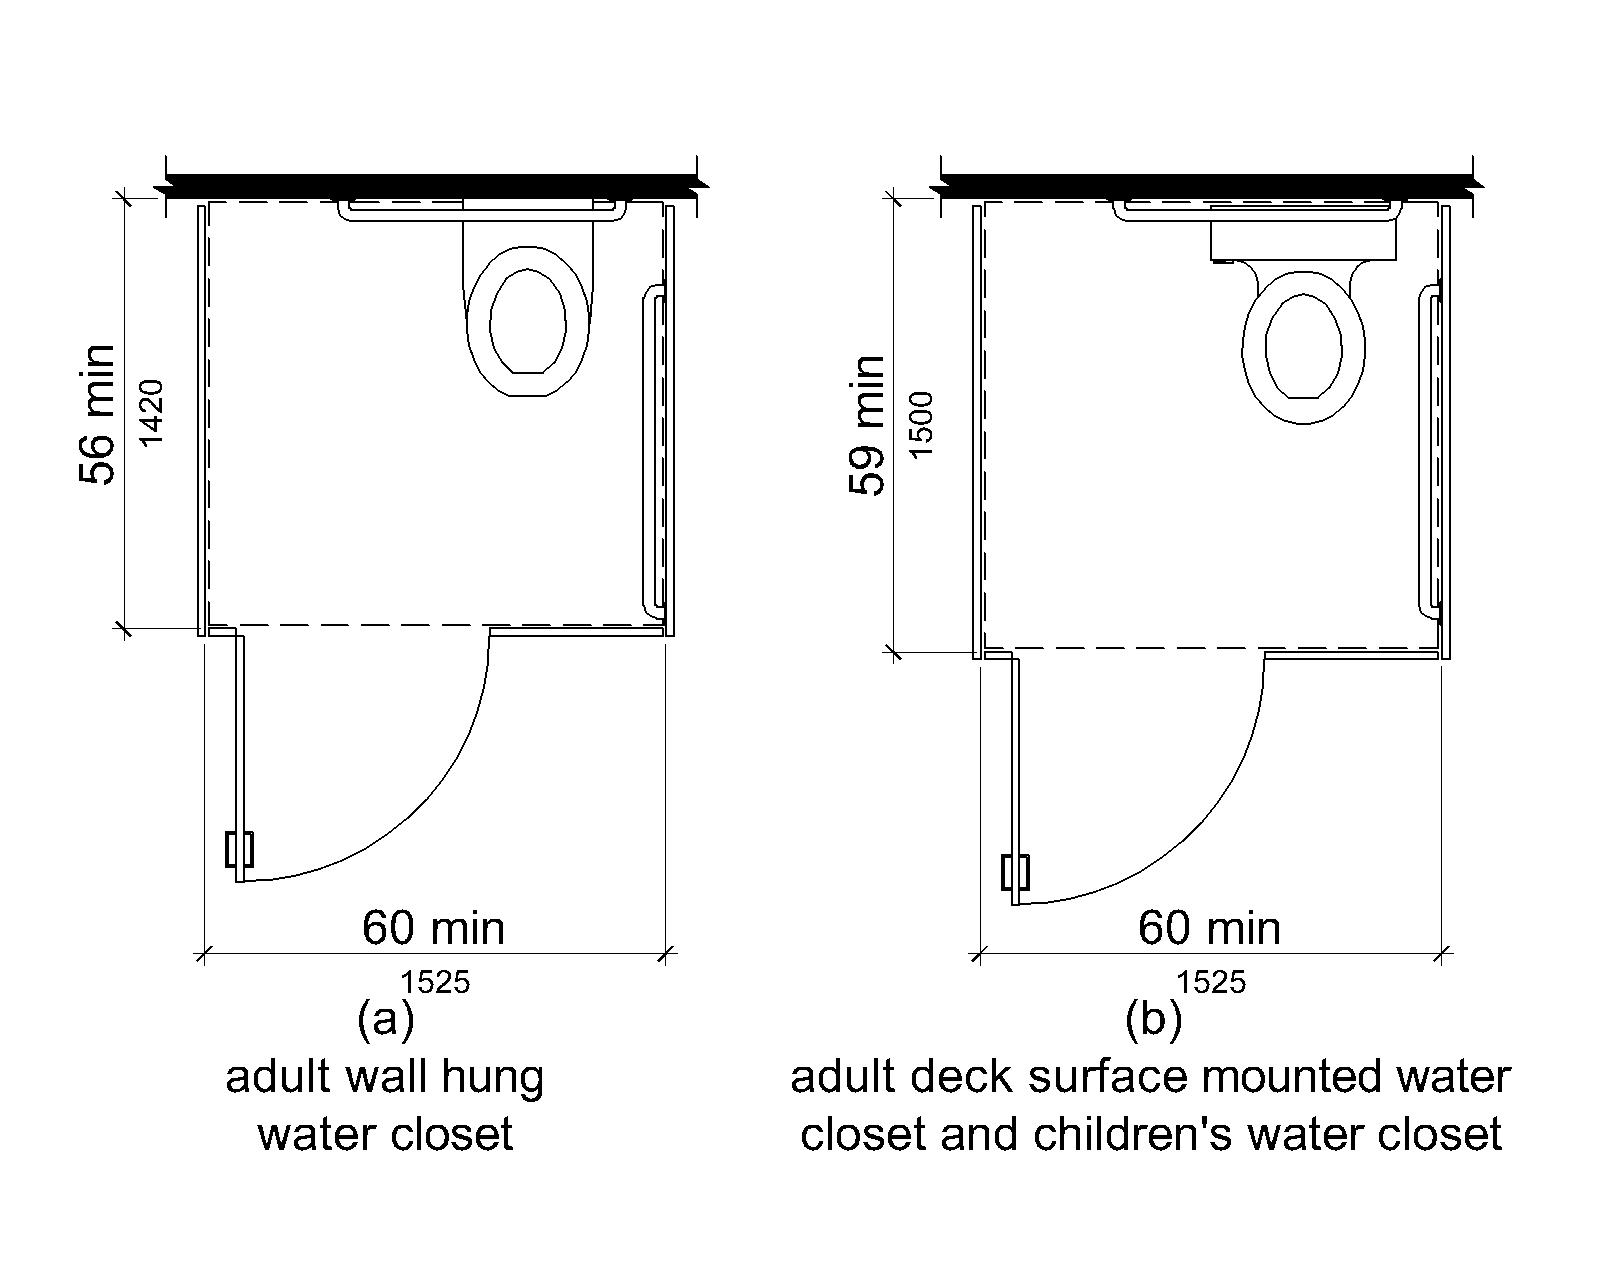 Figure (a) is a plan view of an adult wall hung water closet. The compartment is shown to be 60 inches (1525 mm) wide minimum and 56 inches (1420 mm) deep minimum. Figure (b) is a plan view of an adult deck surface mounted and a children's water closet. The compartment is shown to be 60 inches (1525 mm) wide minimum and 59 inches (1500 mm) deep minimum.